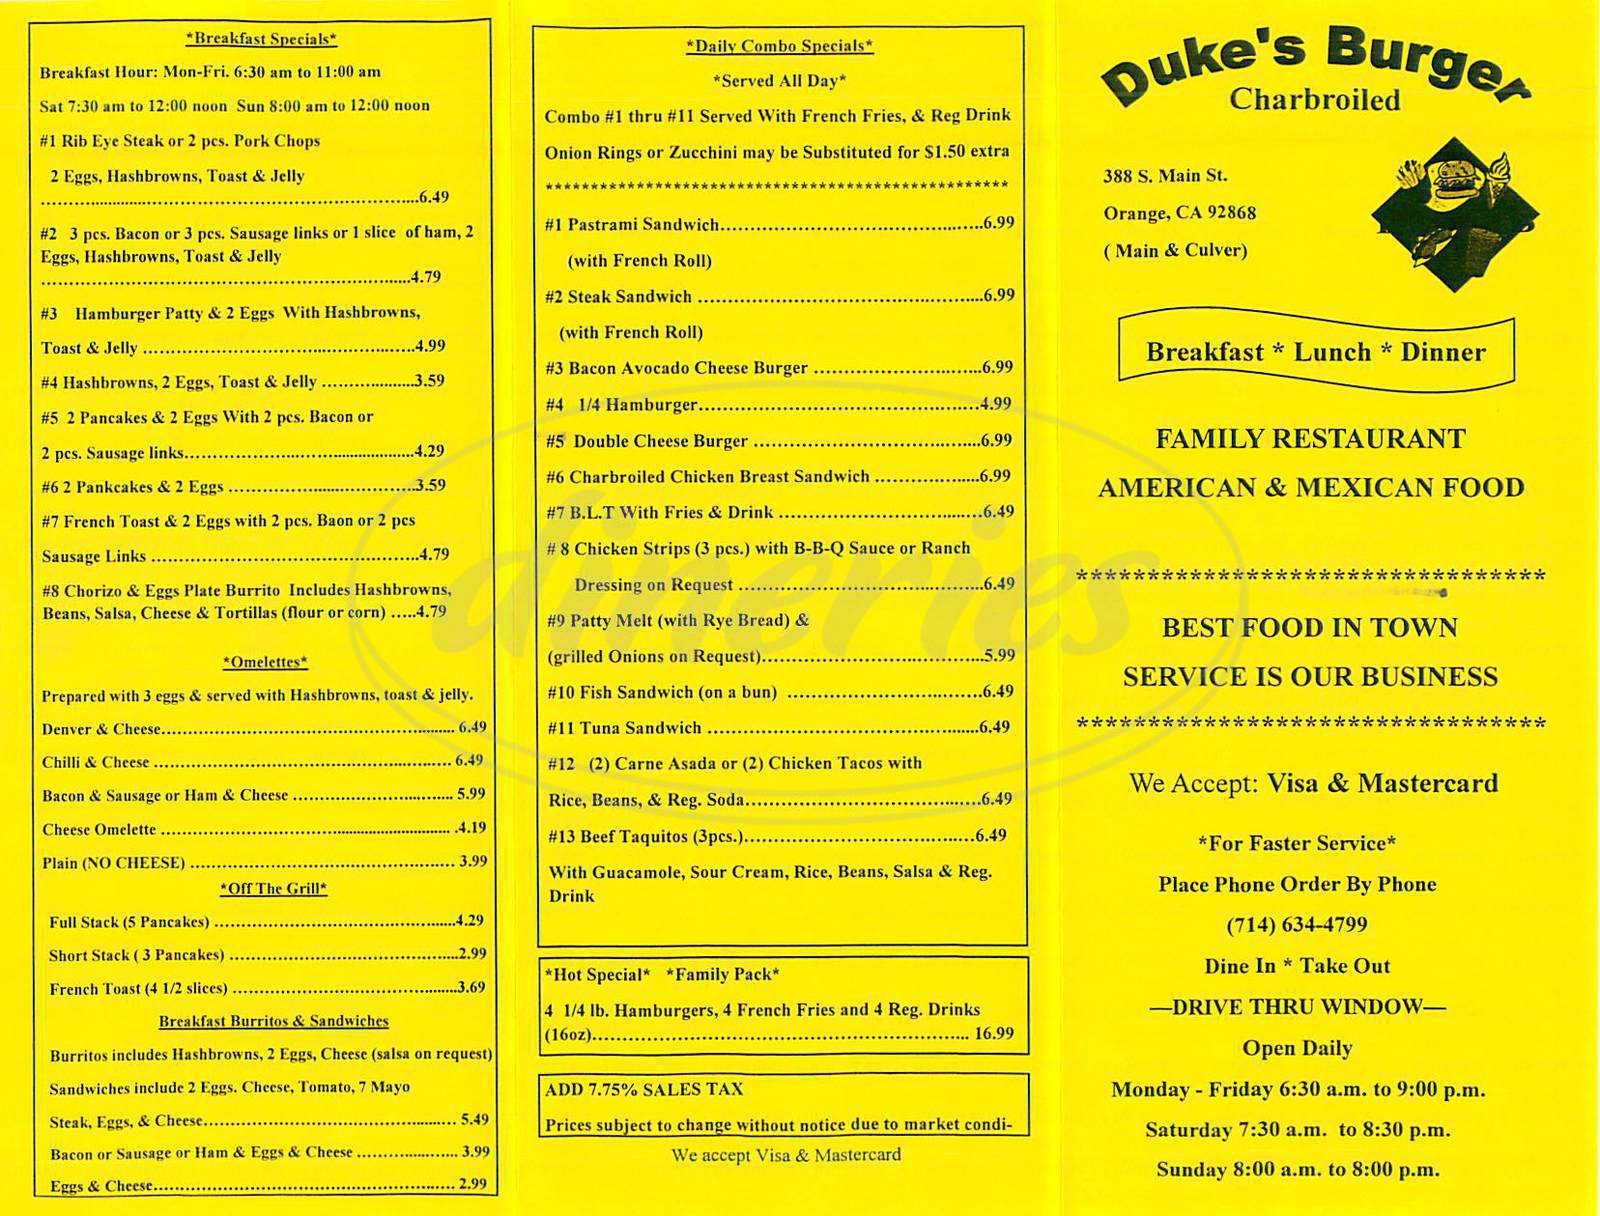 menu for Duke's Burger Charbroiled